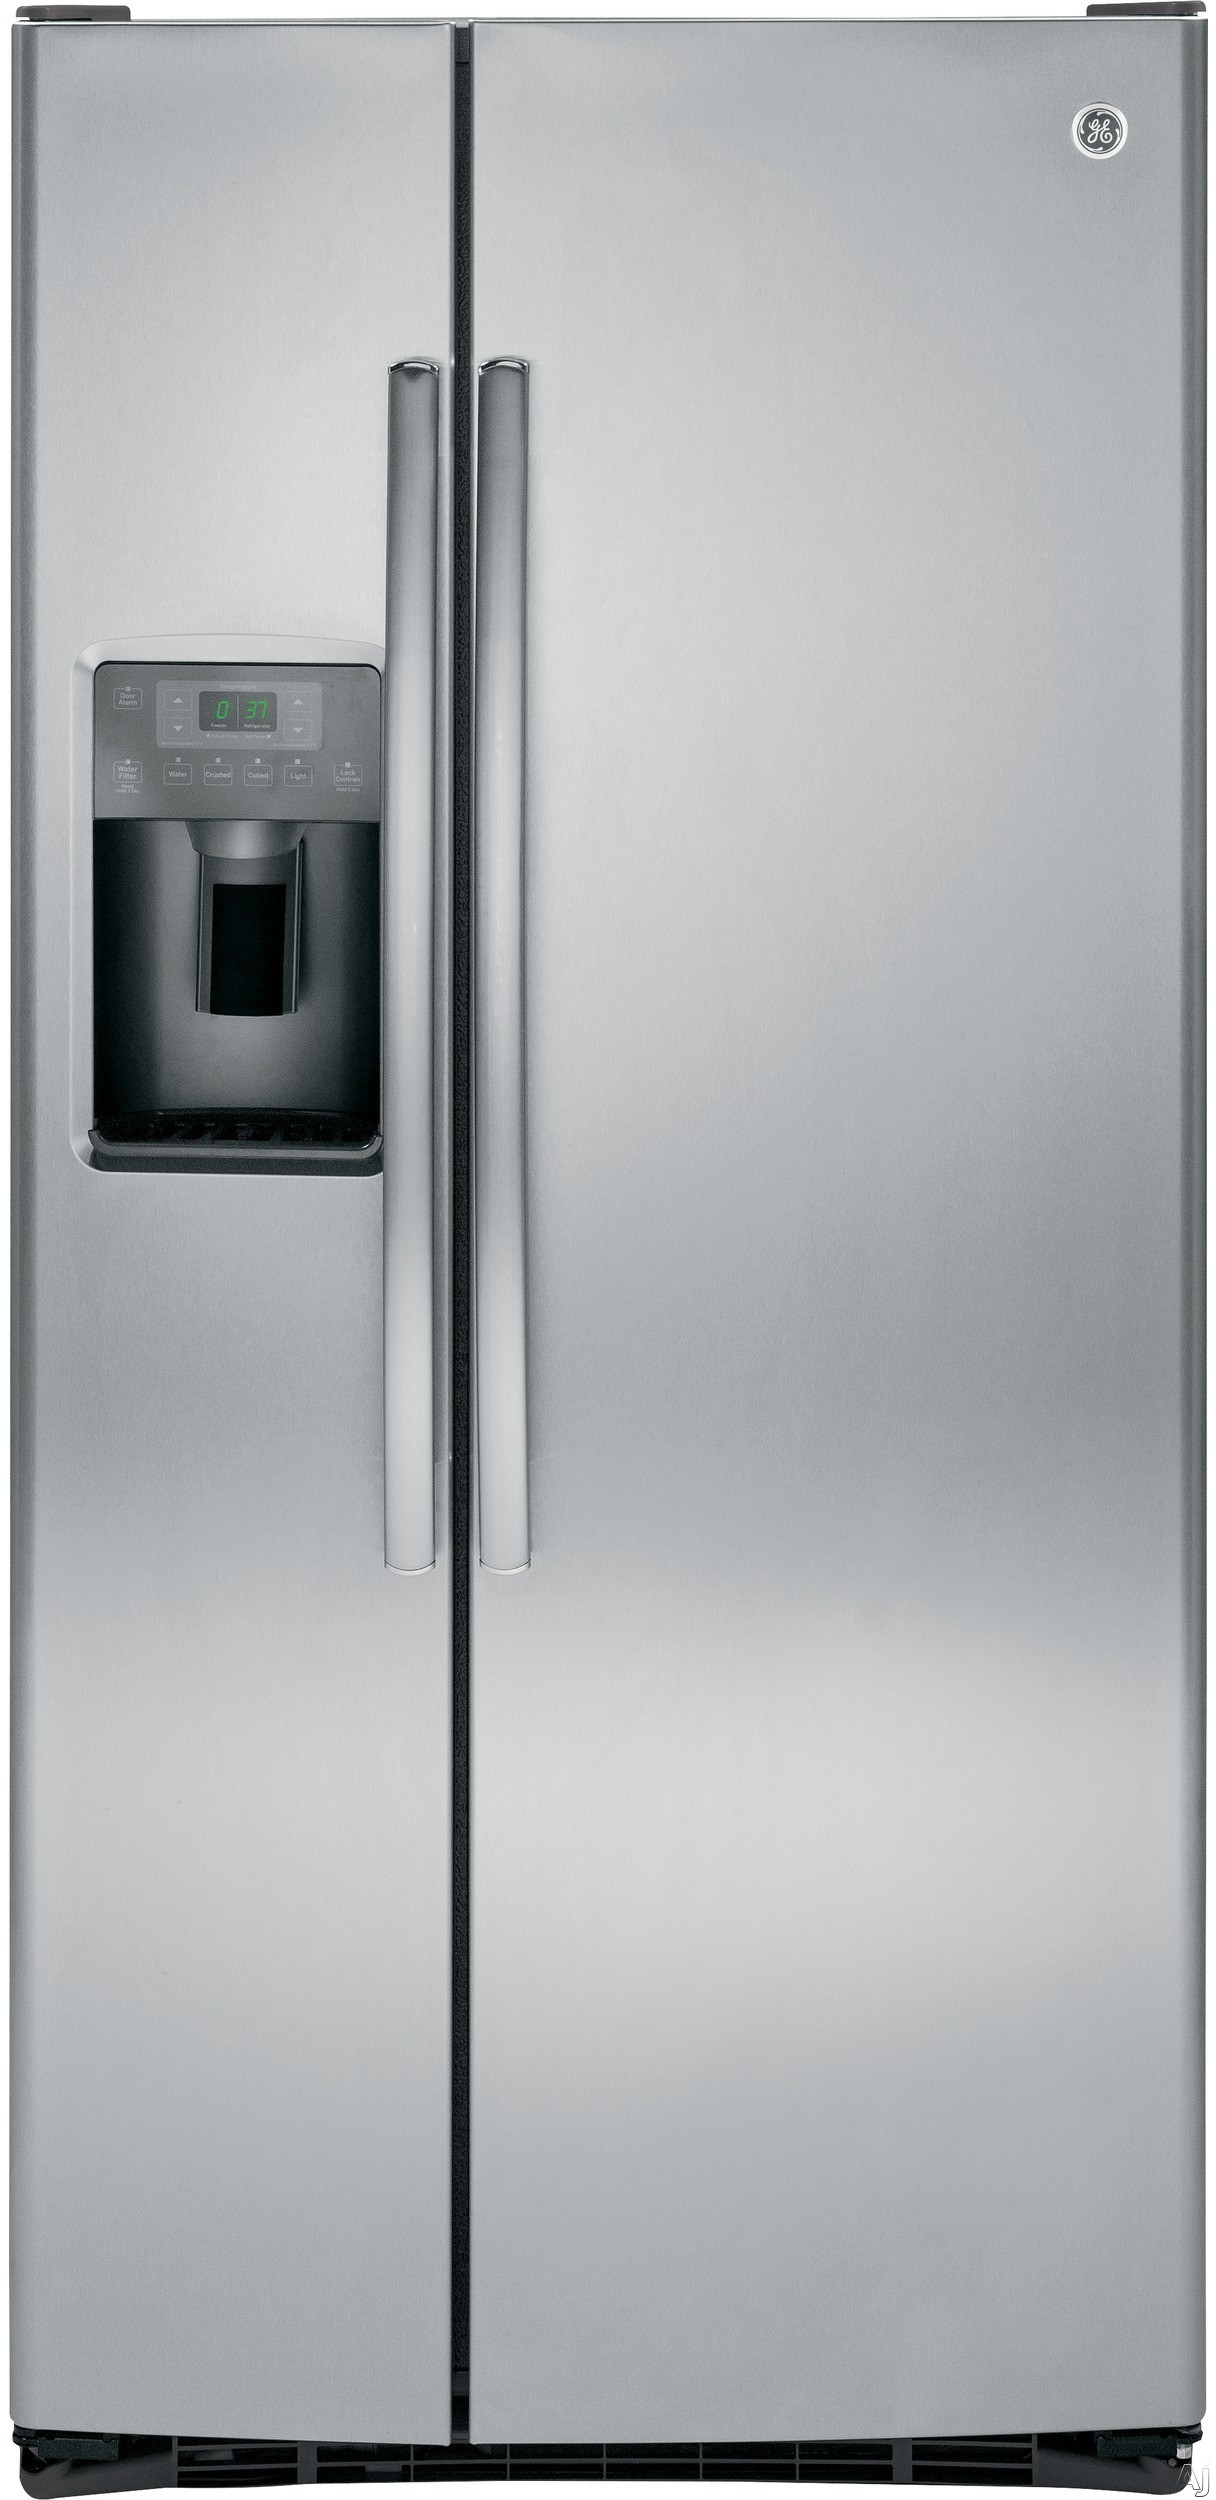 GE GSE23GSKSS 33 Inch Side-by-Side Refrigerator with Ice and Water Dispenser, Advanced Water Filtration, Snack Drawer, Humidity-Controlled Crisper Drawer, Spillproof Slide-Out Glass Shelving, Gallon Door Storage, ENERGY STAR® and 23.2 cu. ft. Capacity: Stainless Steel